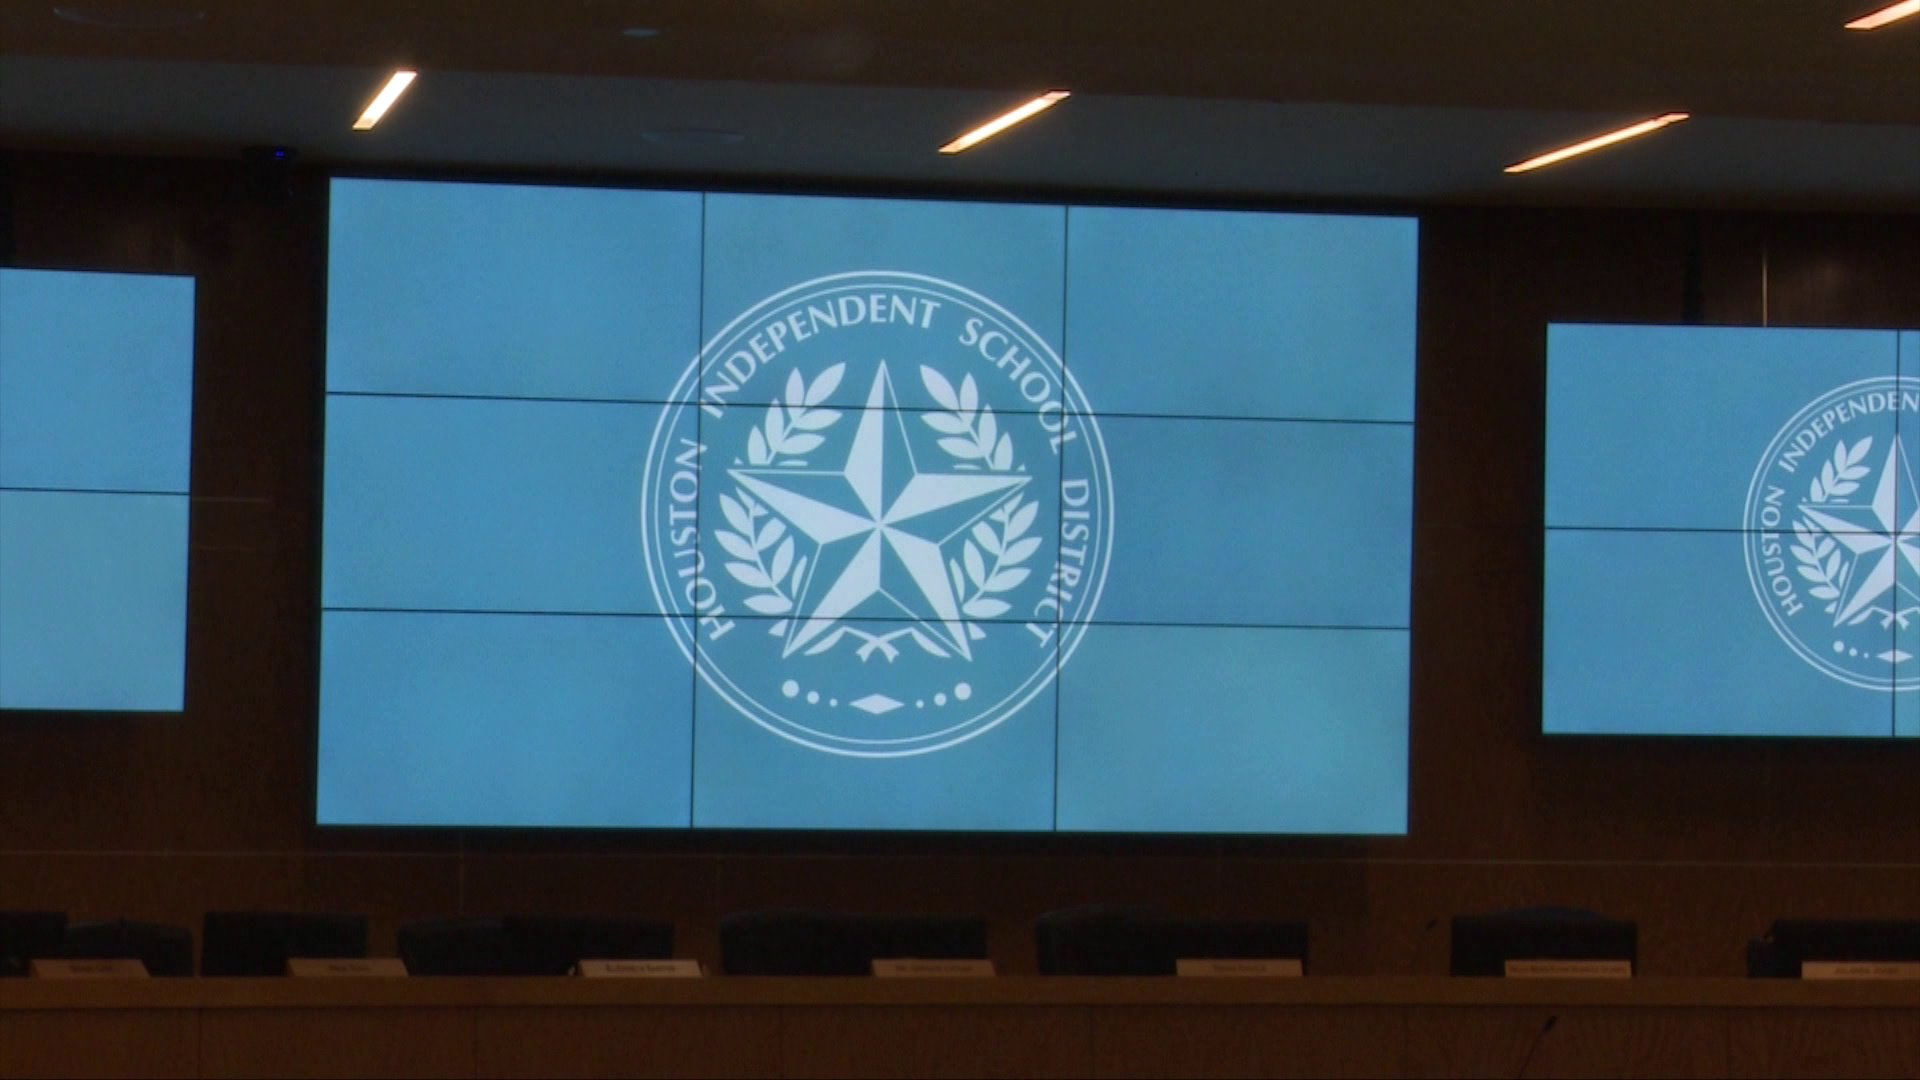 Hisd Proposing Year Round Academic Calendar For 2020 2021 With Regard To Owens Community College Calendar 2020